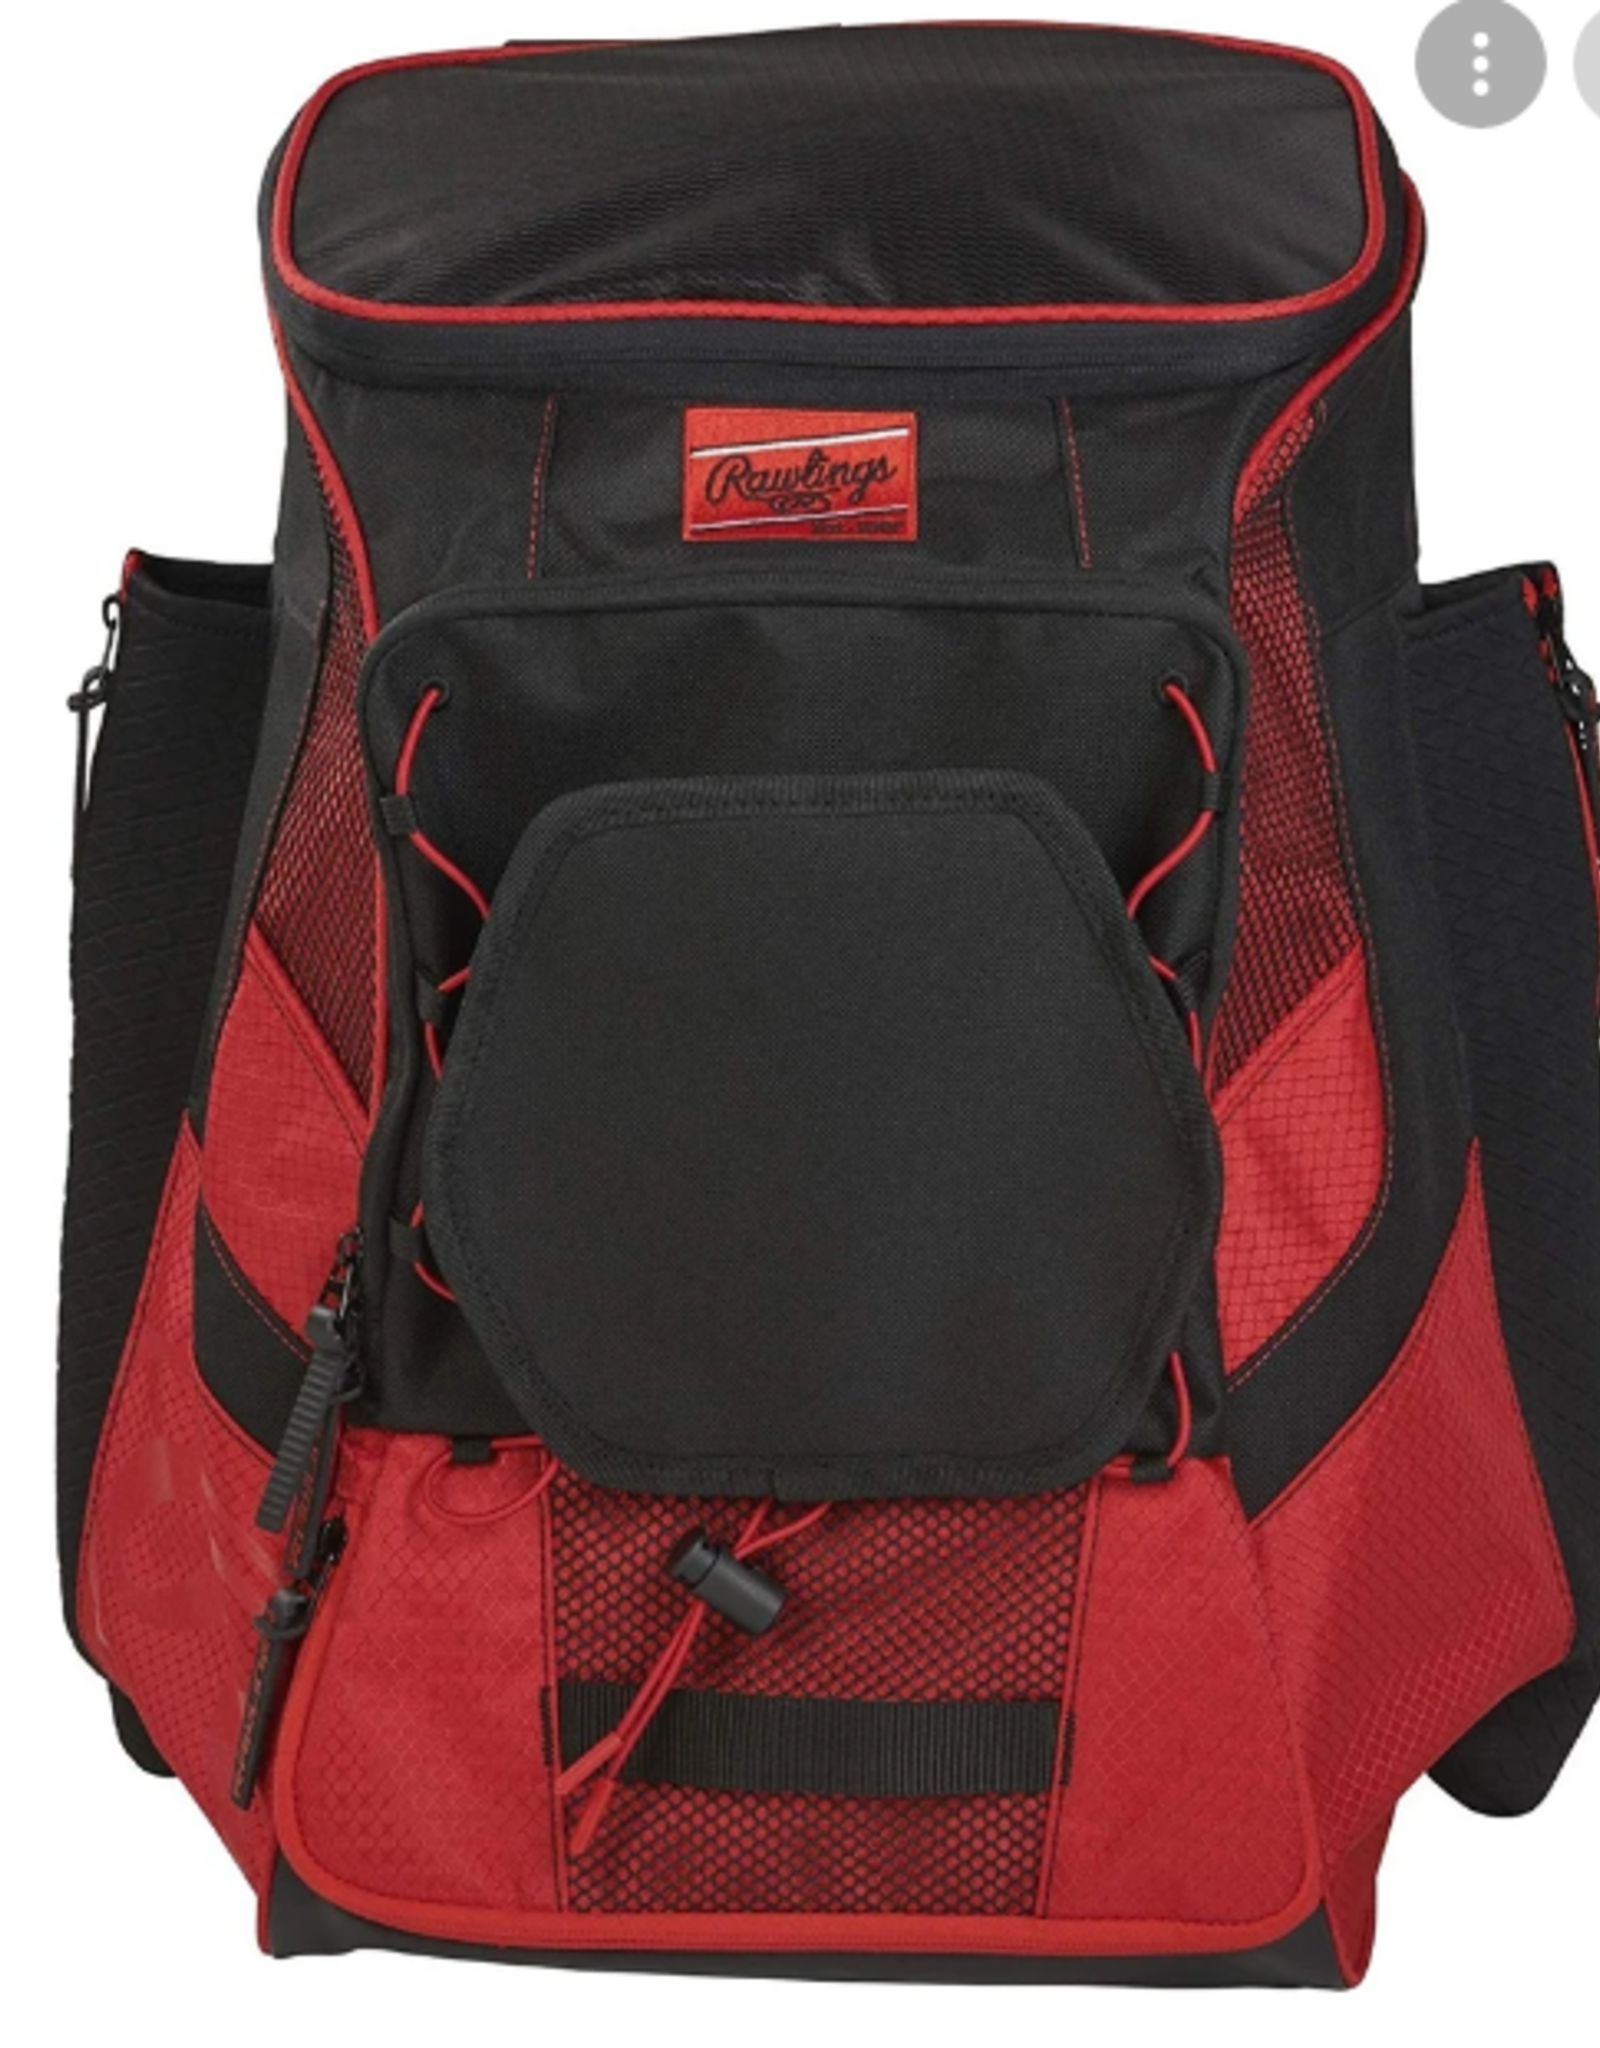 """Rawlings R600 Player's Backpack-Scarlet-20""""x13.5""""x9.5"""